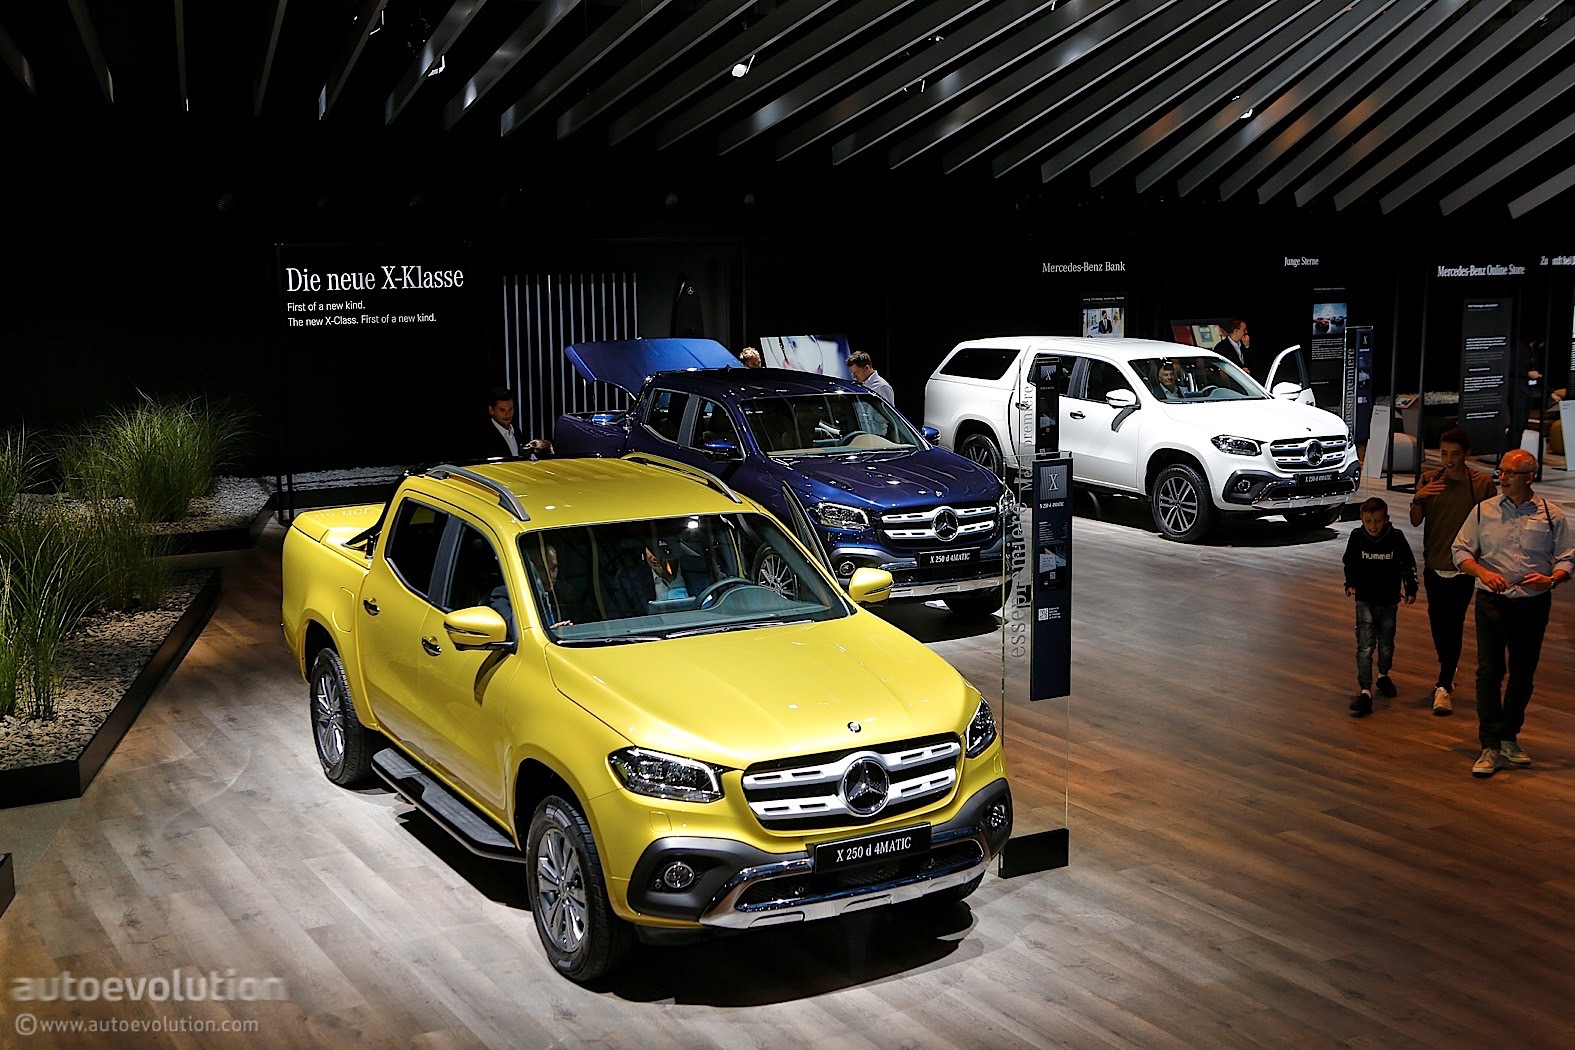 https://s1.cdn.autoevolution.com/images/news/2018-mercedes-benz-x-class-is-like-a-caveman-in-an-expensive-suit-at-iaa-120414_1.jpg